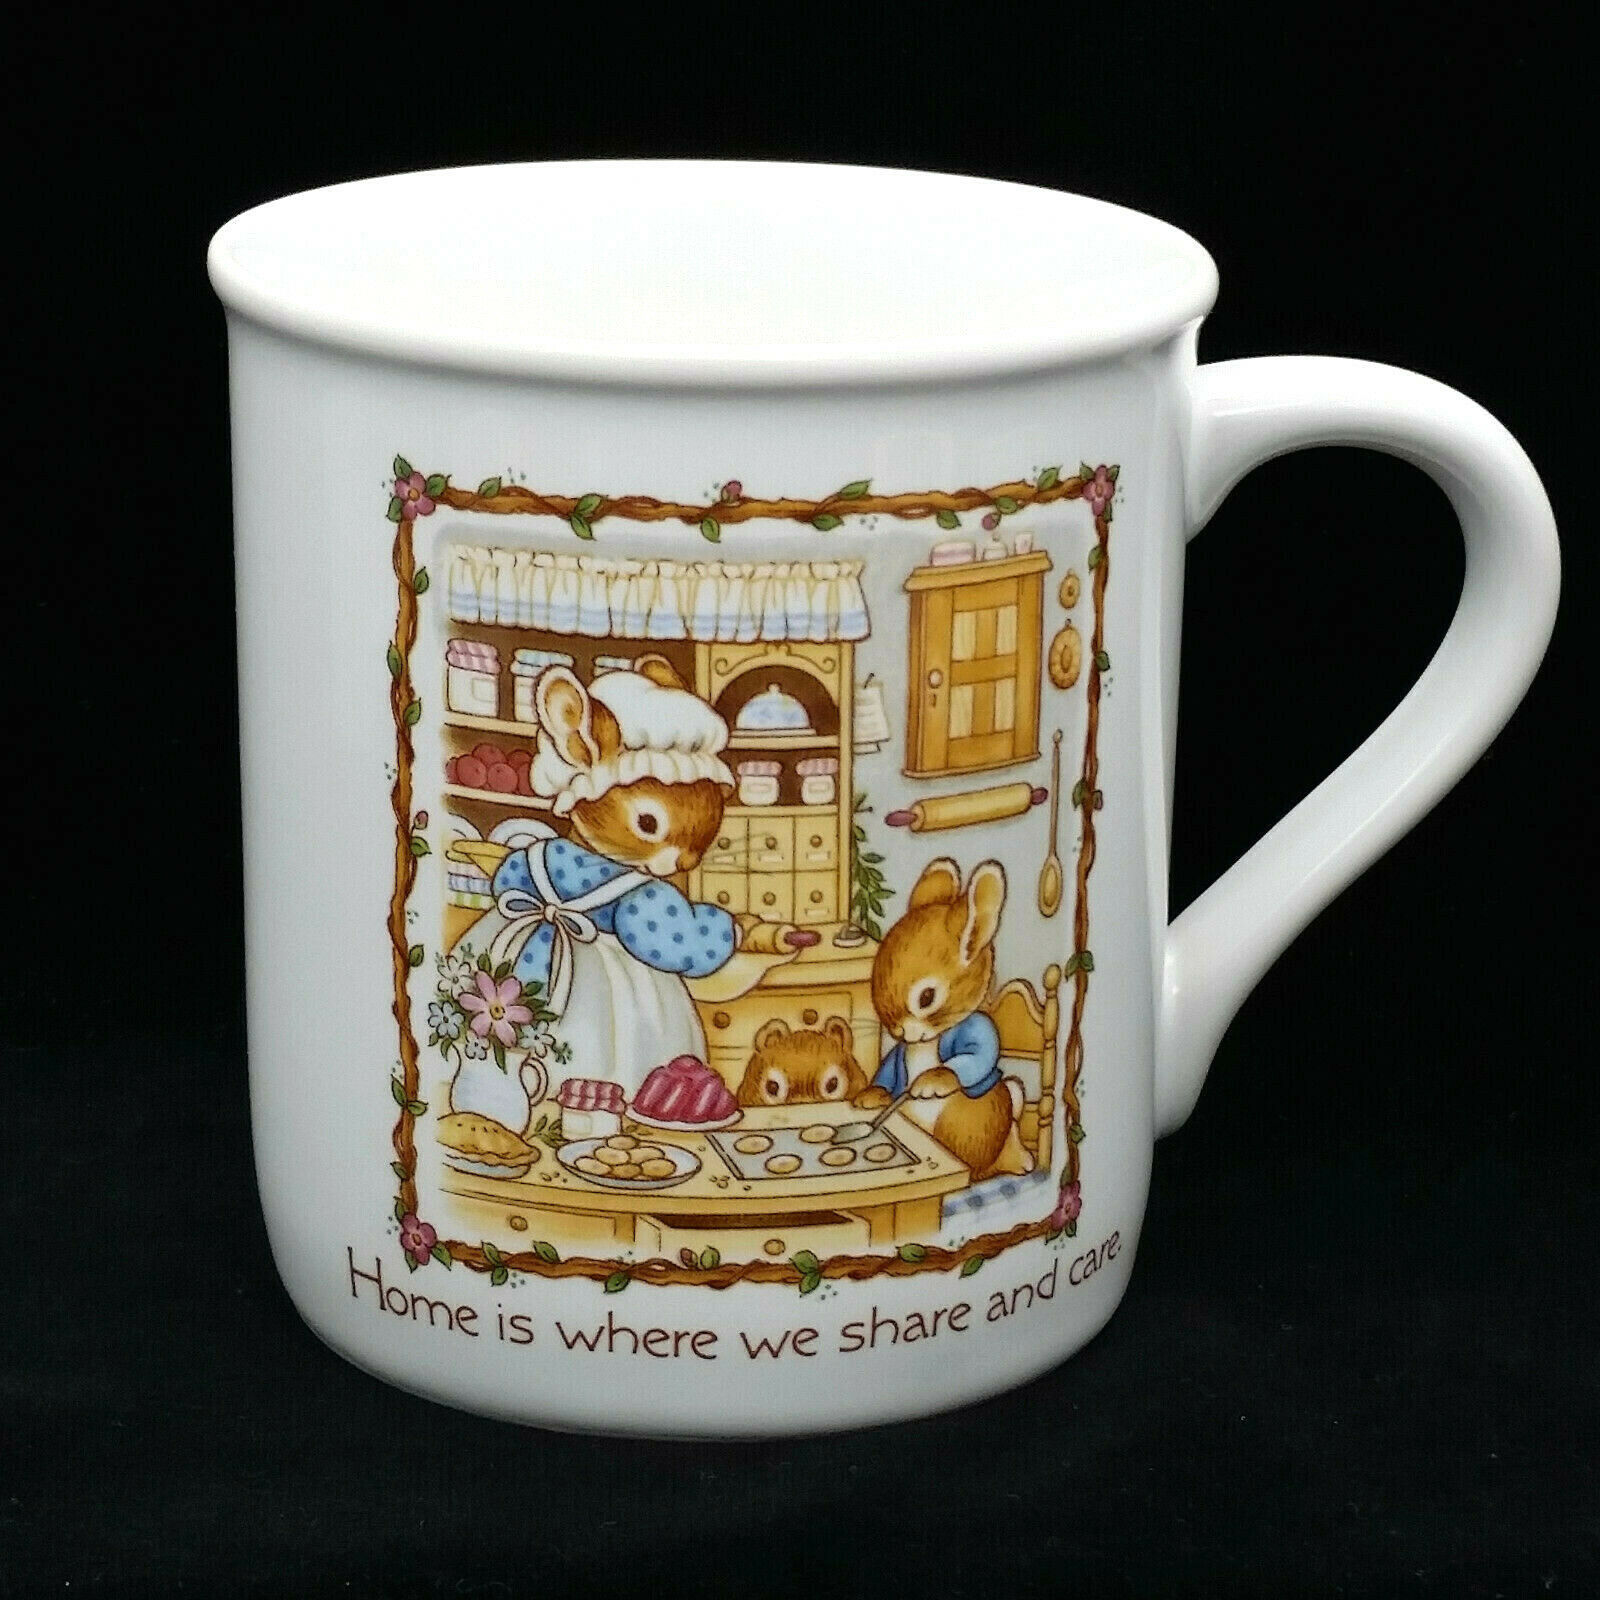 Primary image for Vintage Hallmark Coffee Mug Home Is Where The Heart Is Share Care Bunny Rabbits